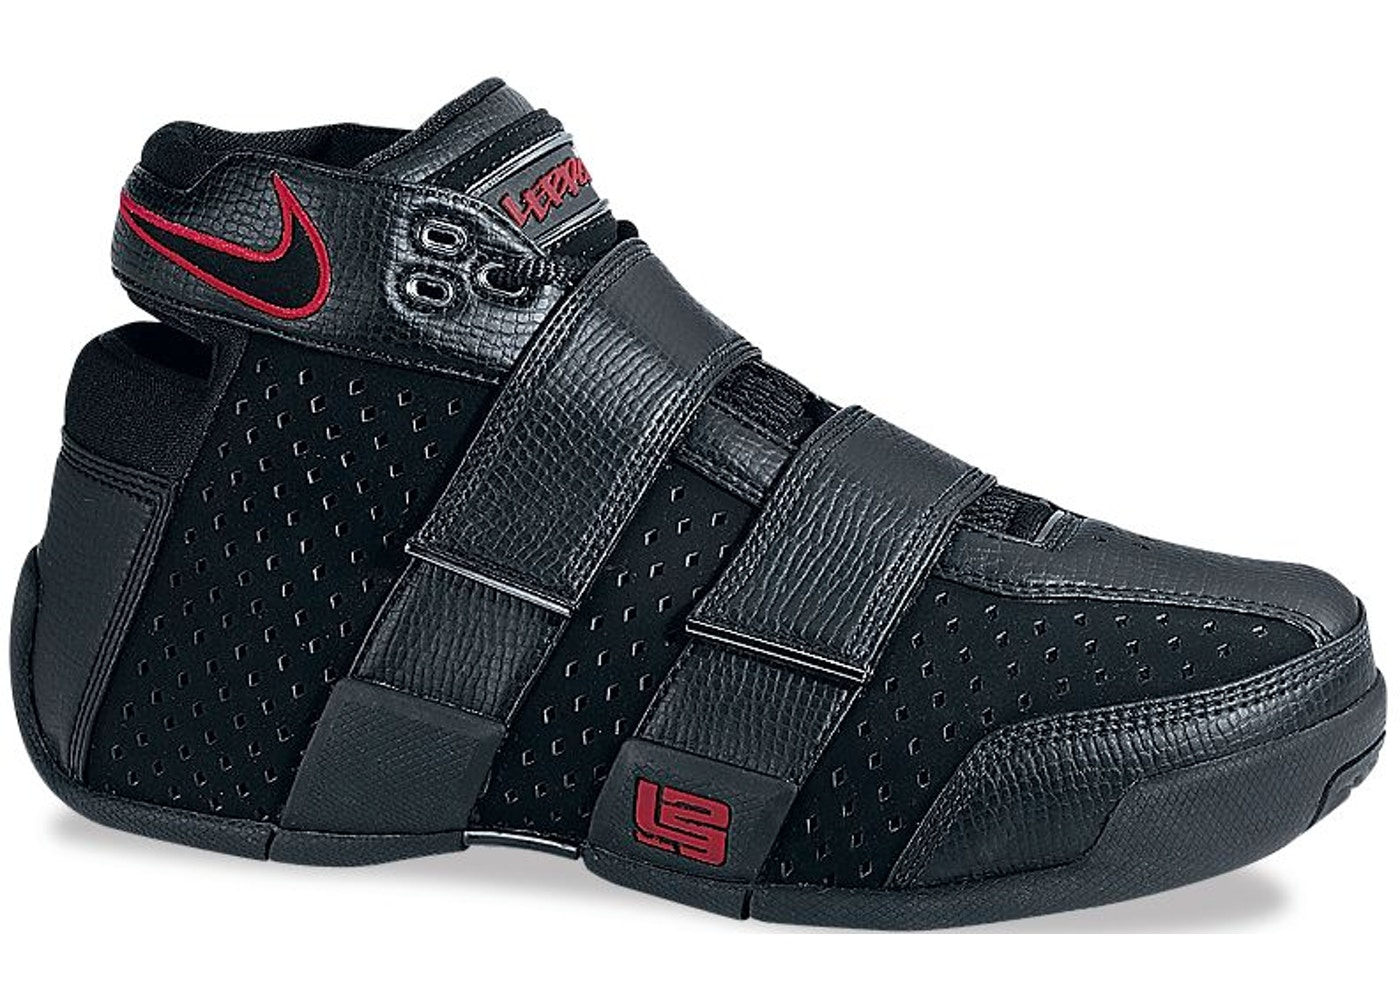 b8034e6caf4 Nike LeBron Other Shoes - Price Premium